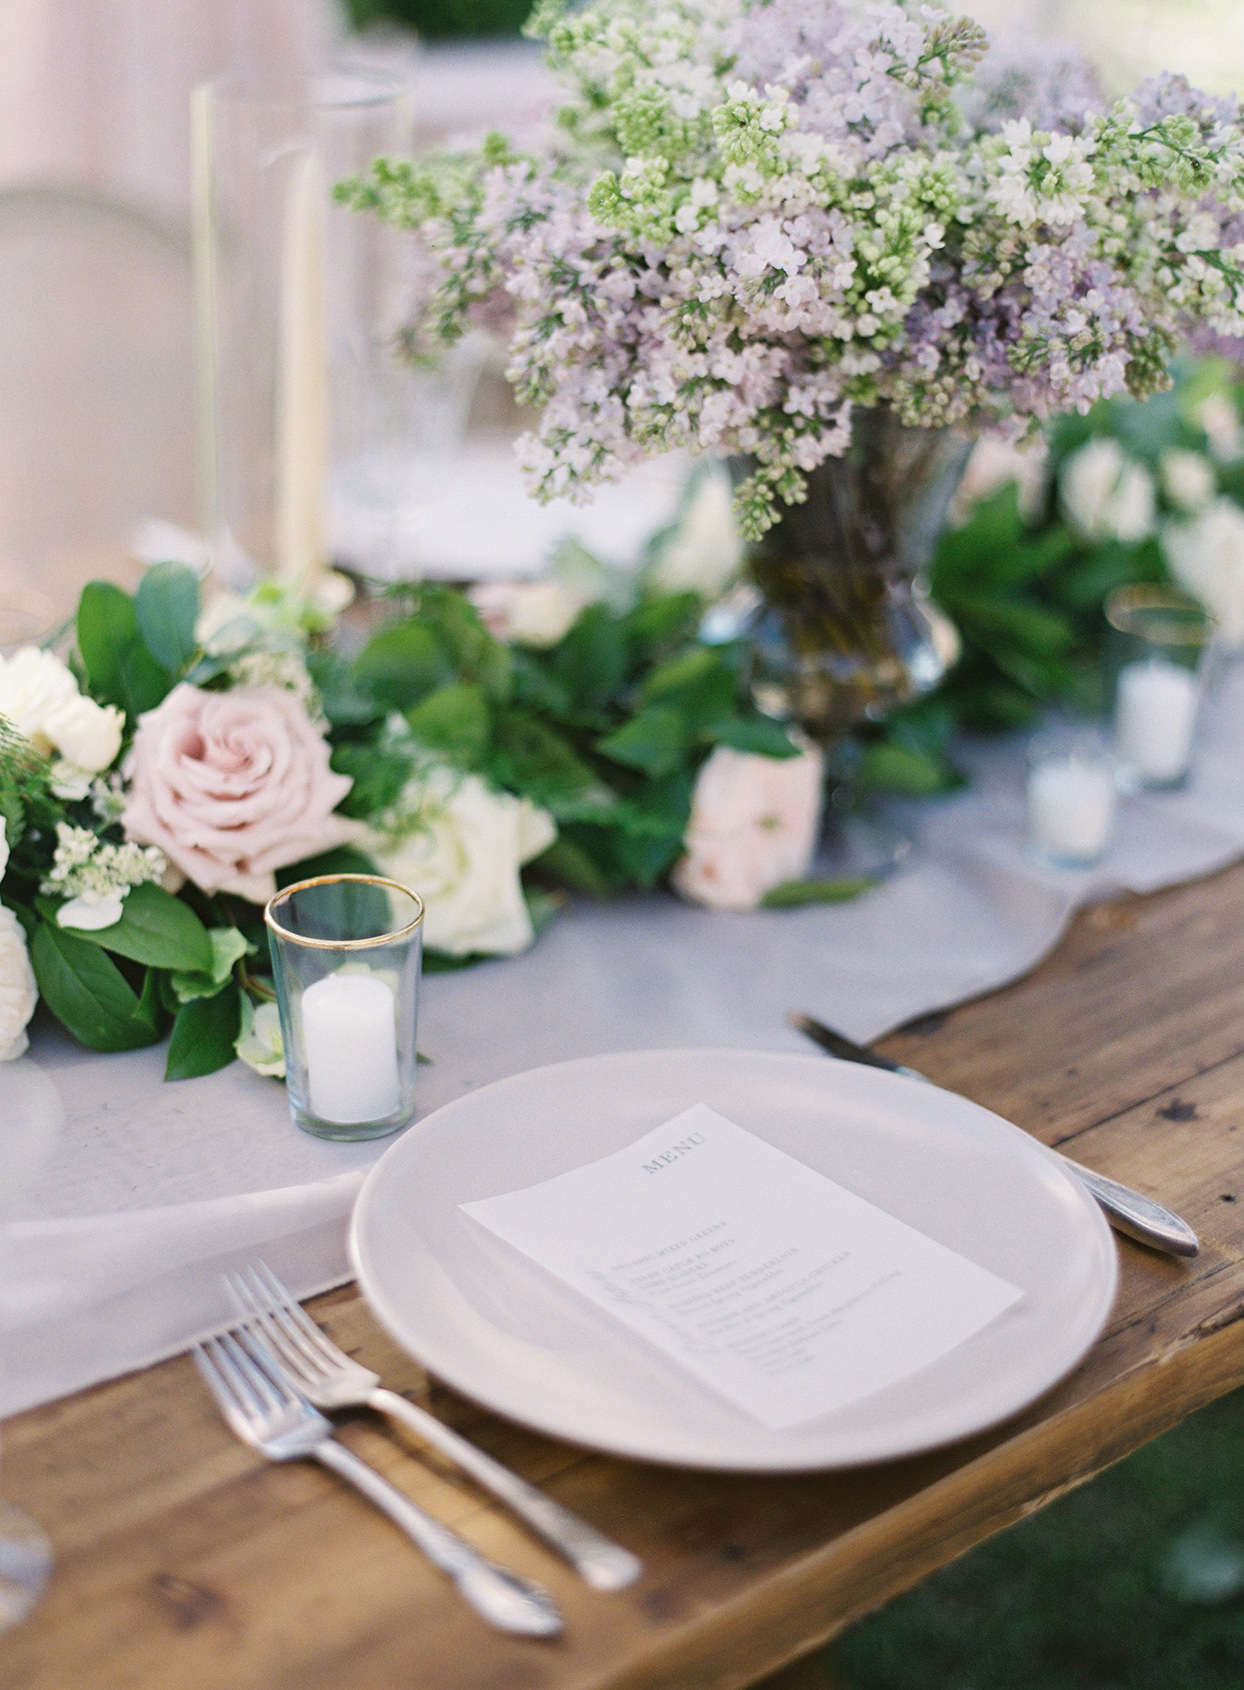 chelsea john wedding place setting white plate floral centerpiece